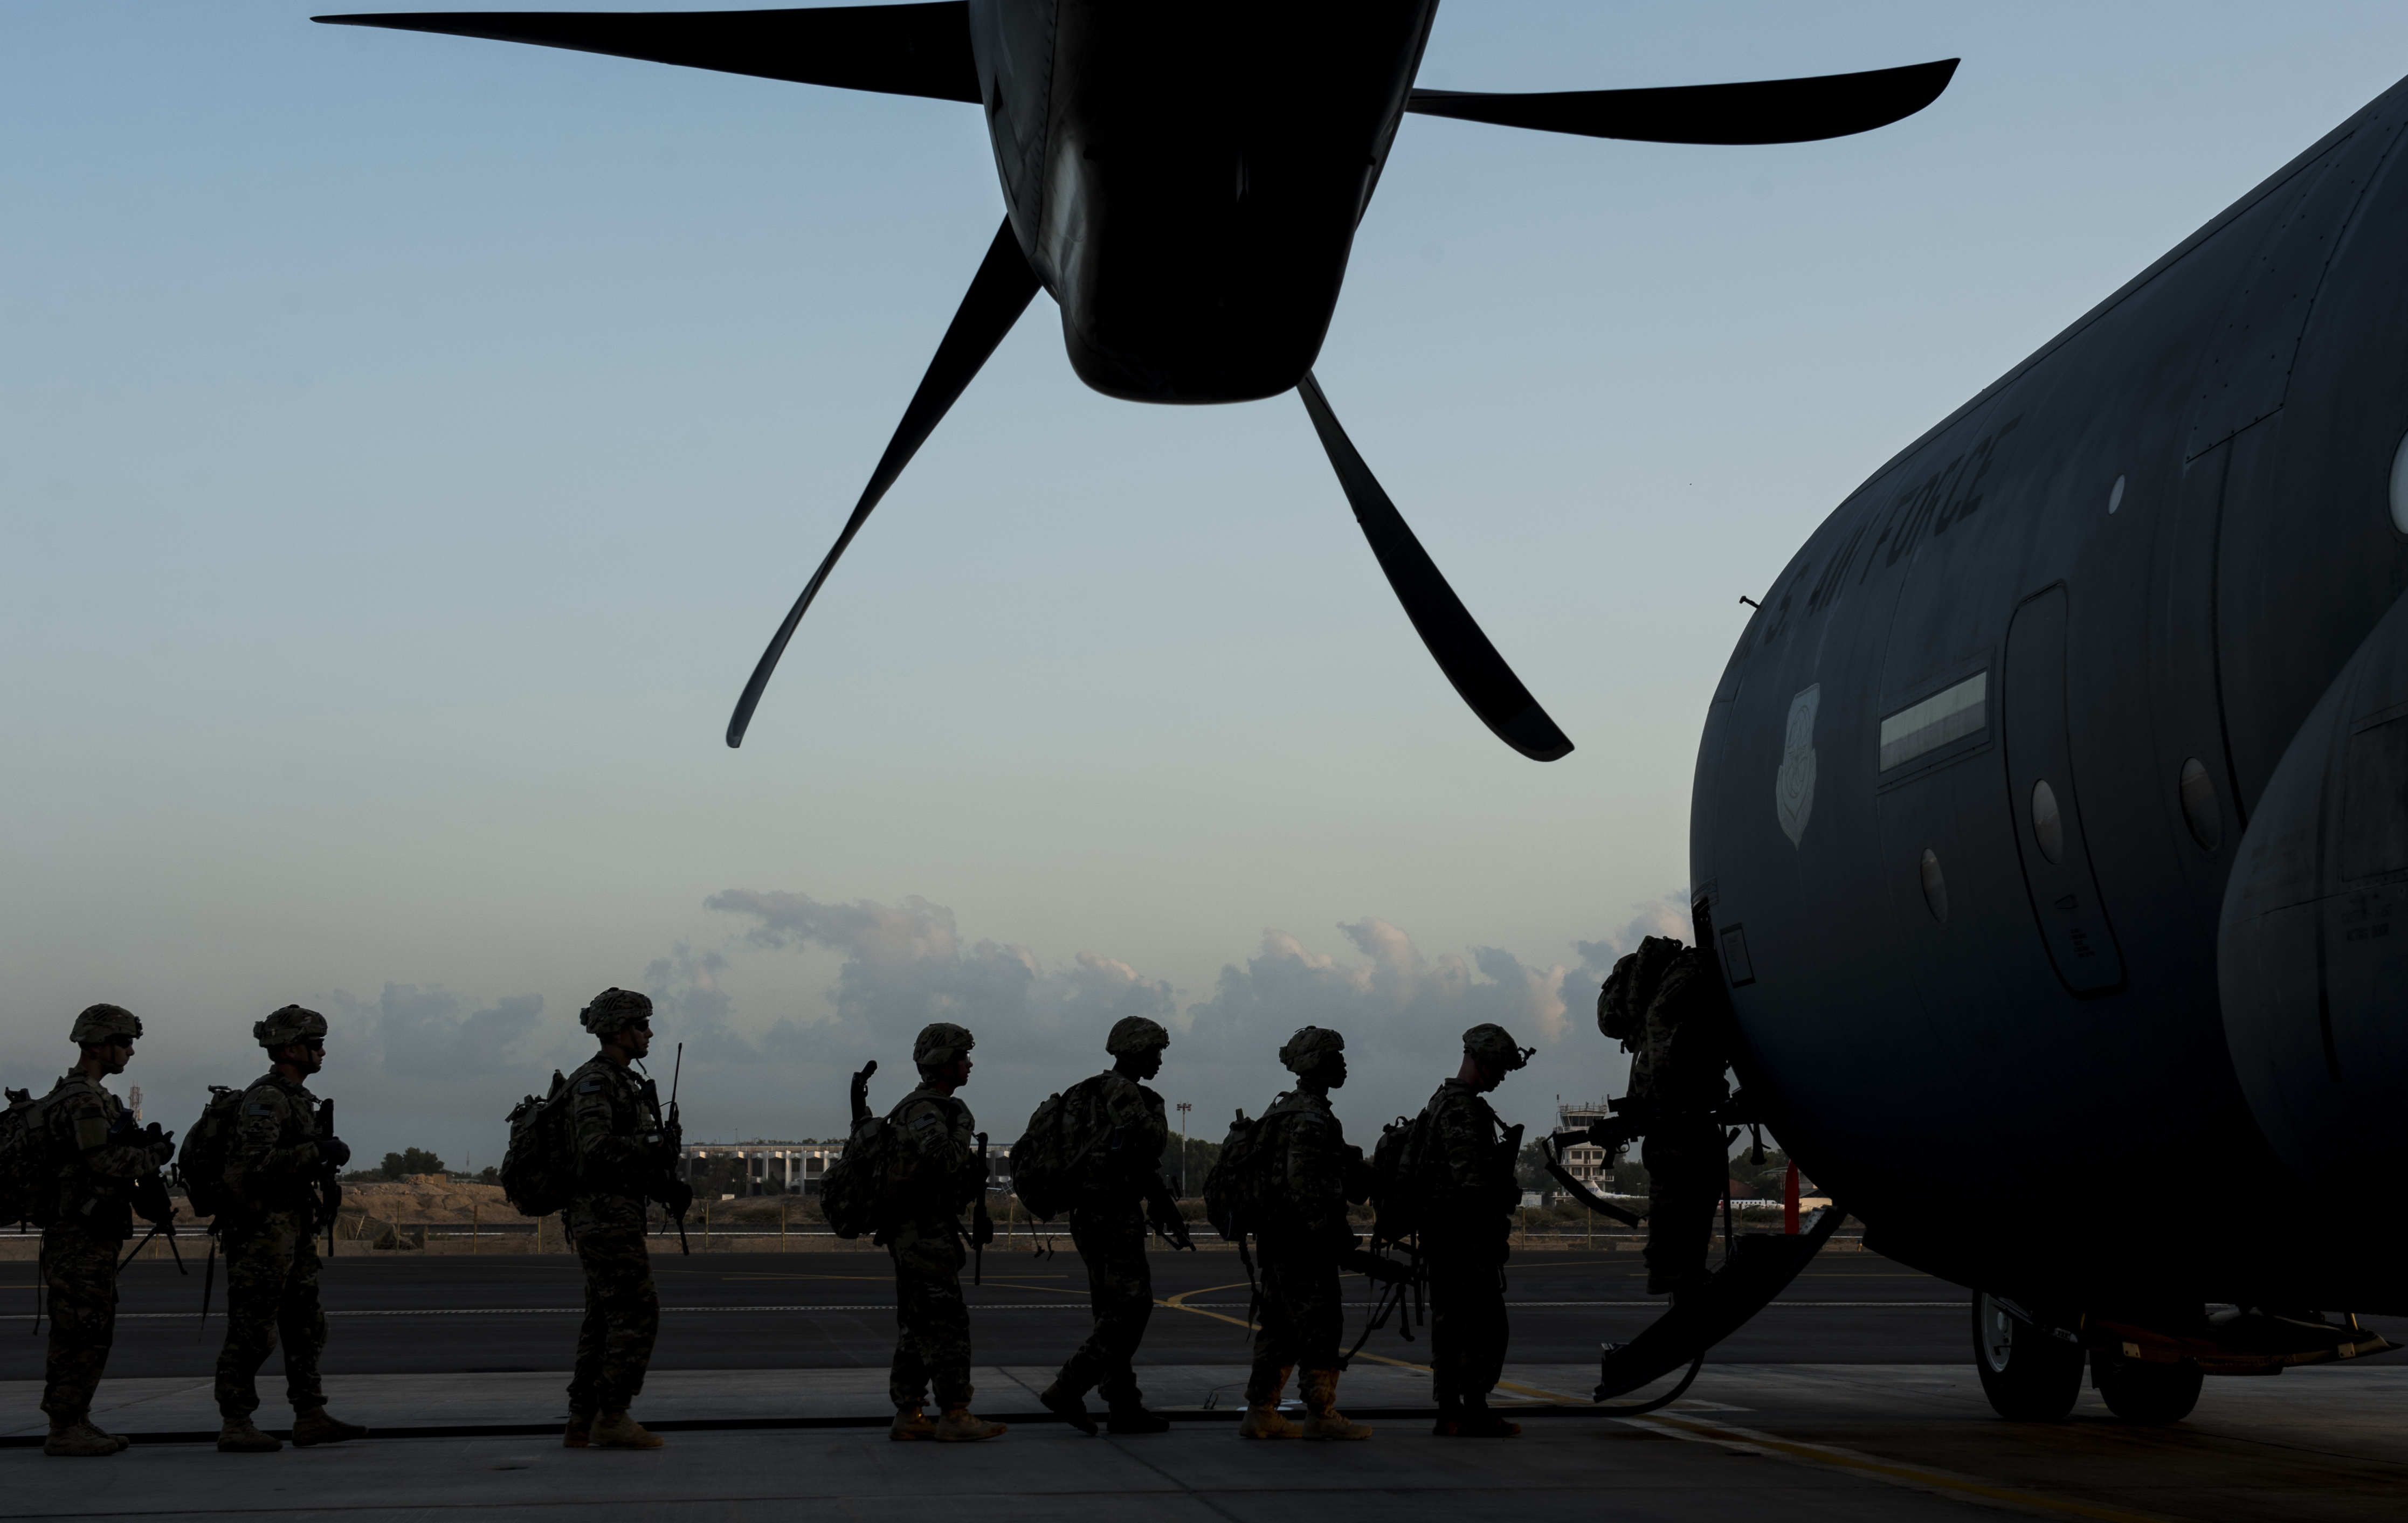 Soldiers from Bravo Company, 3rd Battalion, 15th Infantry Regiment, board a C-130J Super Hercules assigned to the 75th Expeditionary Airlift Squadron Feb. 13, 2016, at Camp Lemonnier, Djibouti. Members of the U.S. Army's Bravo Company 3-15, from Fort Stewart, Georgia, completed a validation exercise displaying their ability to assume responsibility from Alpha Company 3-15, as the East Africa Response Force assigned to Combined Joint Task Force-Horn of Africa. (U.S. Air Force photo by Senior Airman Peter Thompson)